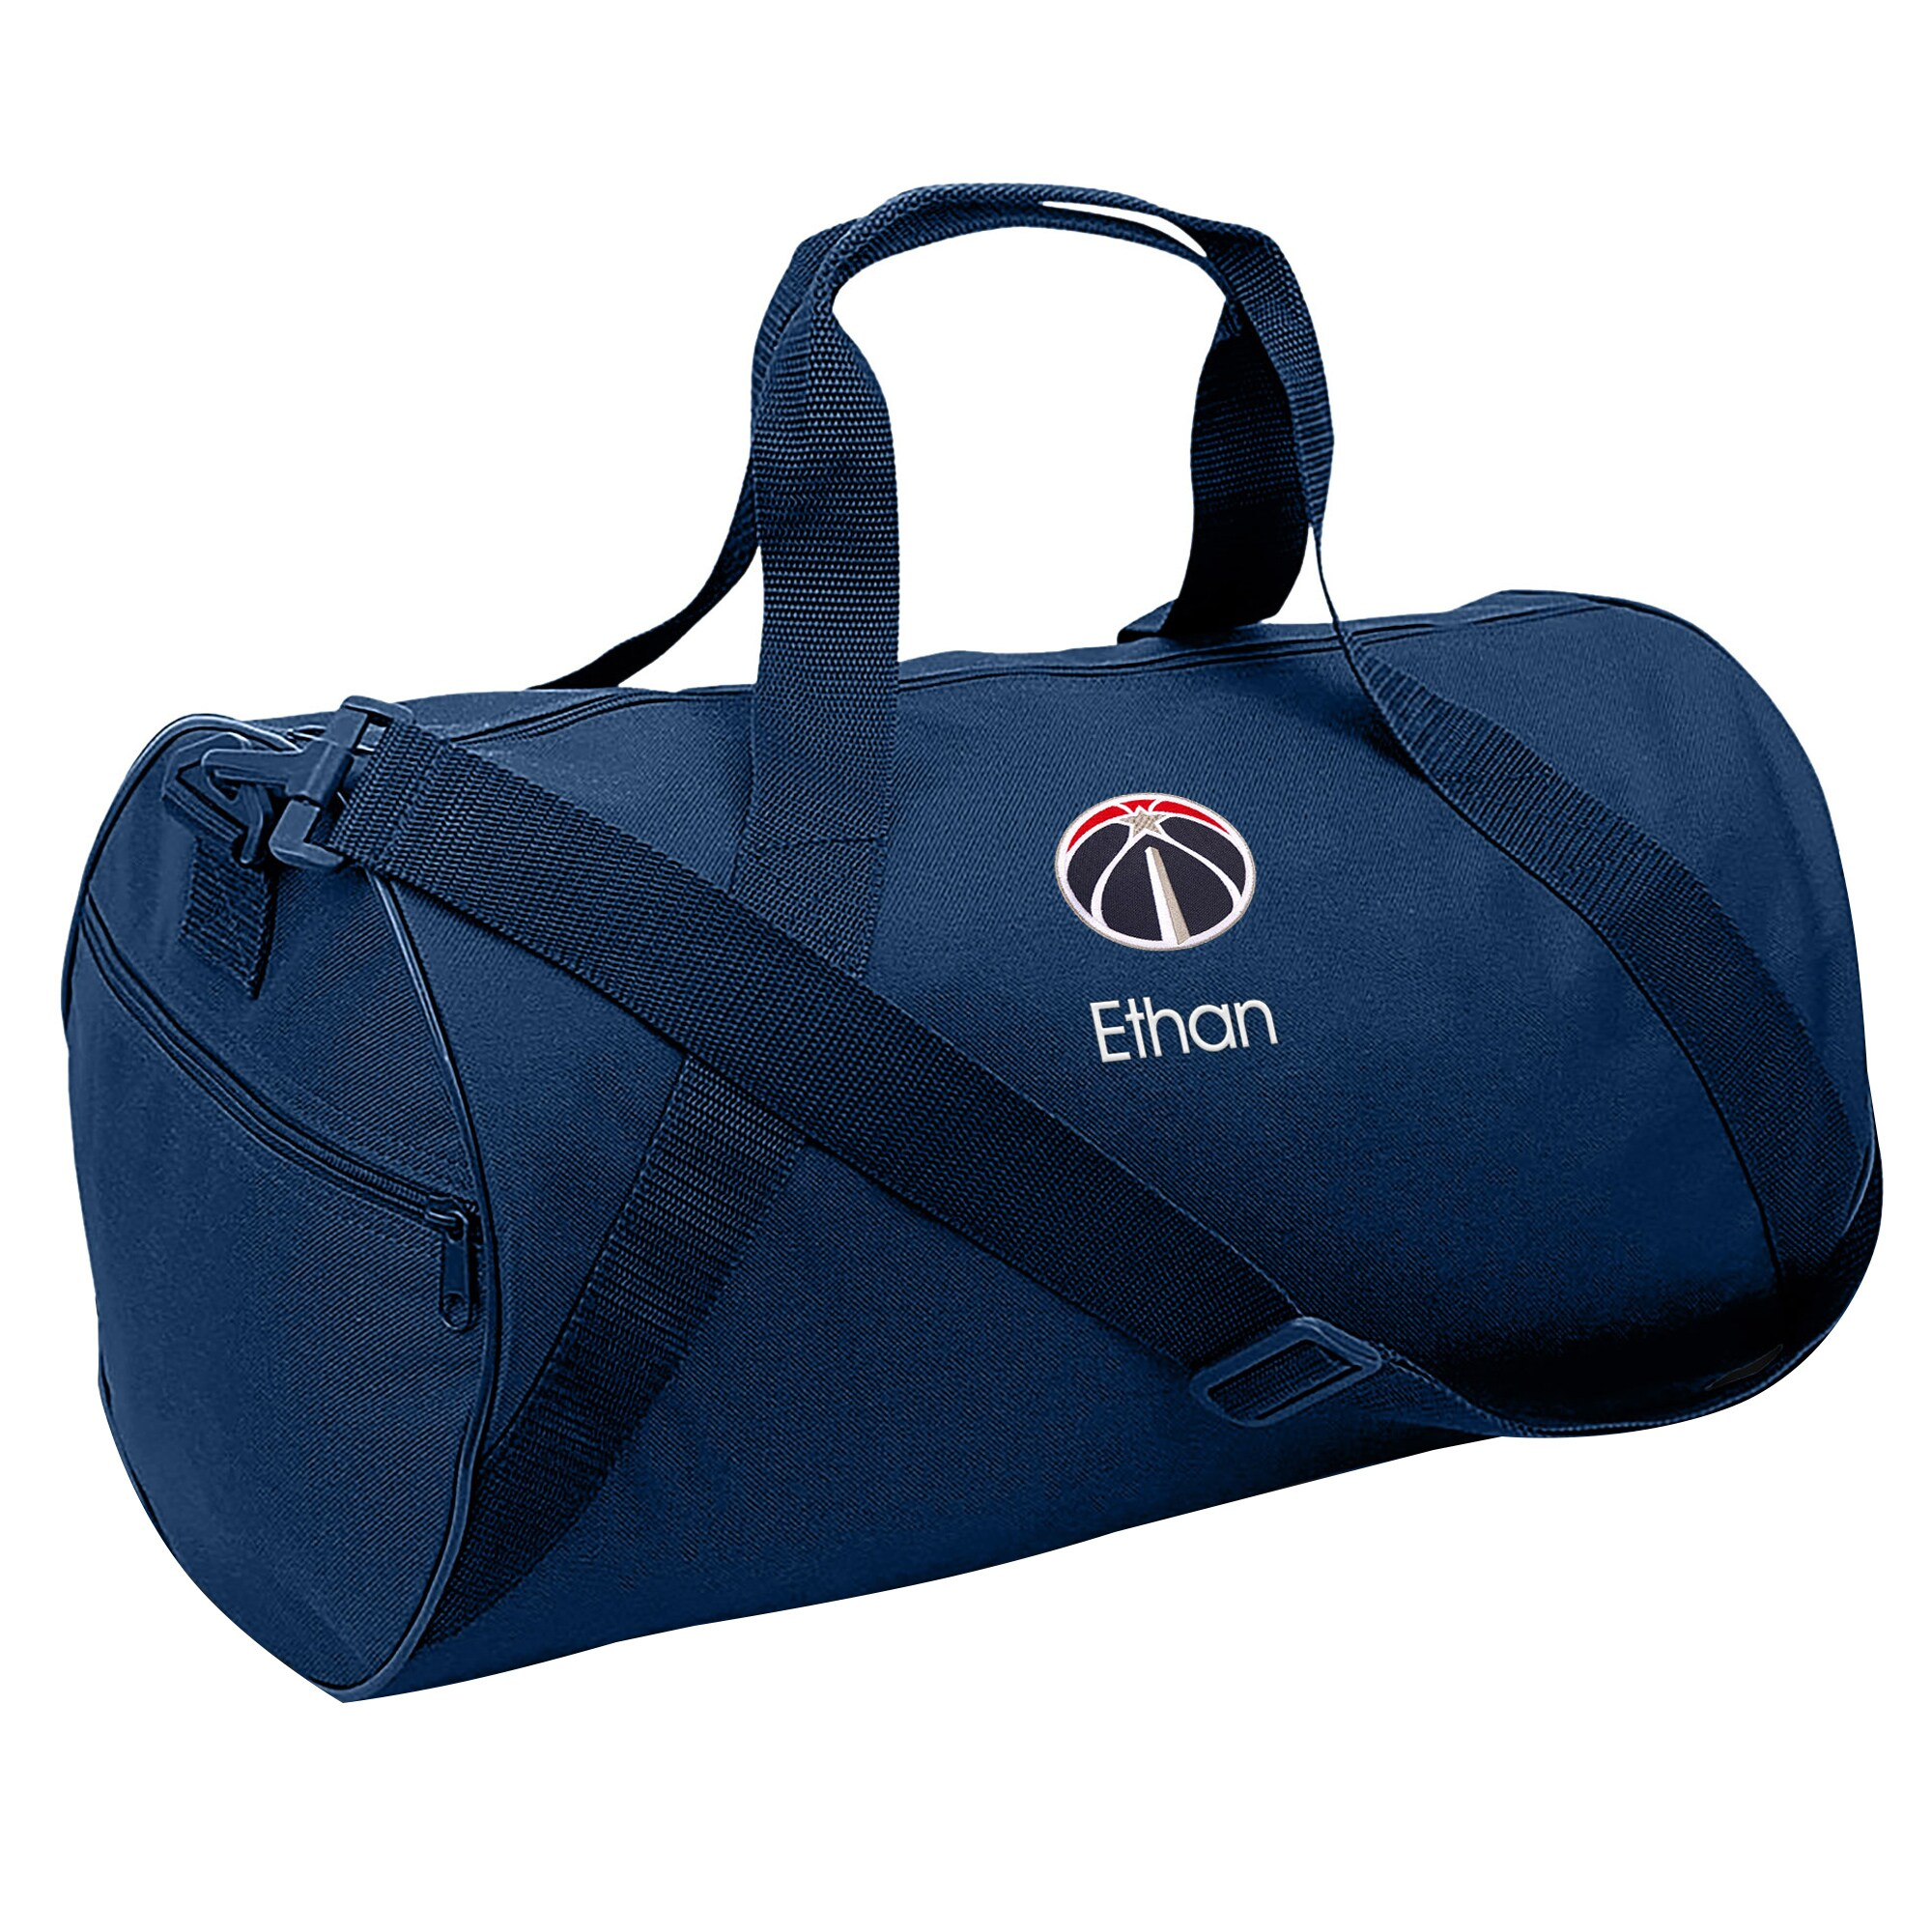 Washington Wizards Youth Personalized Duffle Bag - Navy